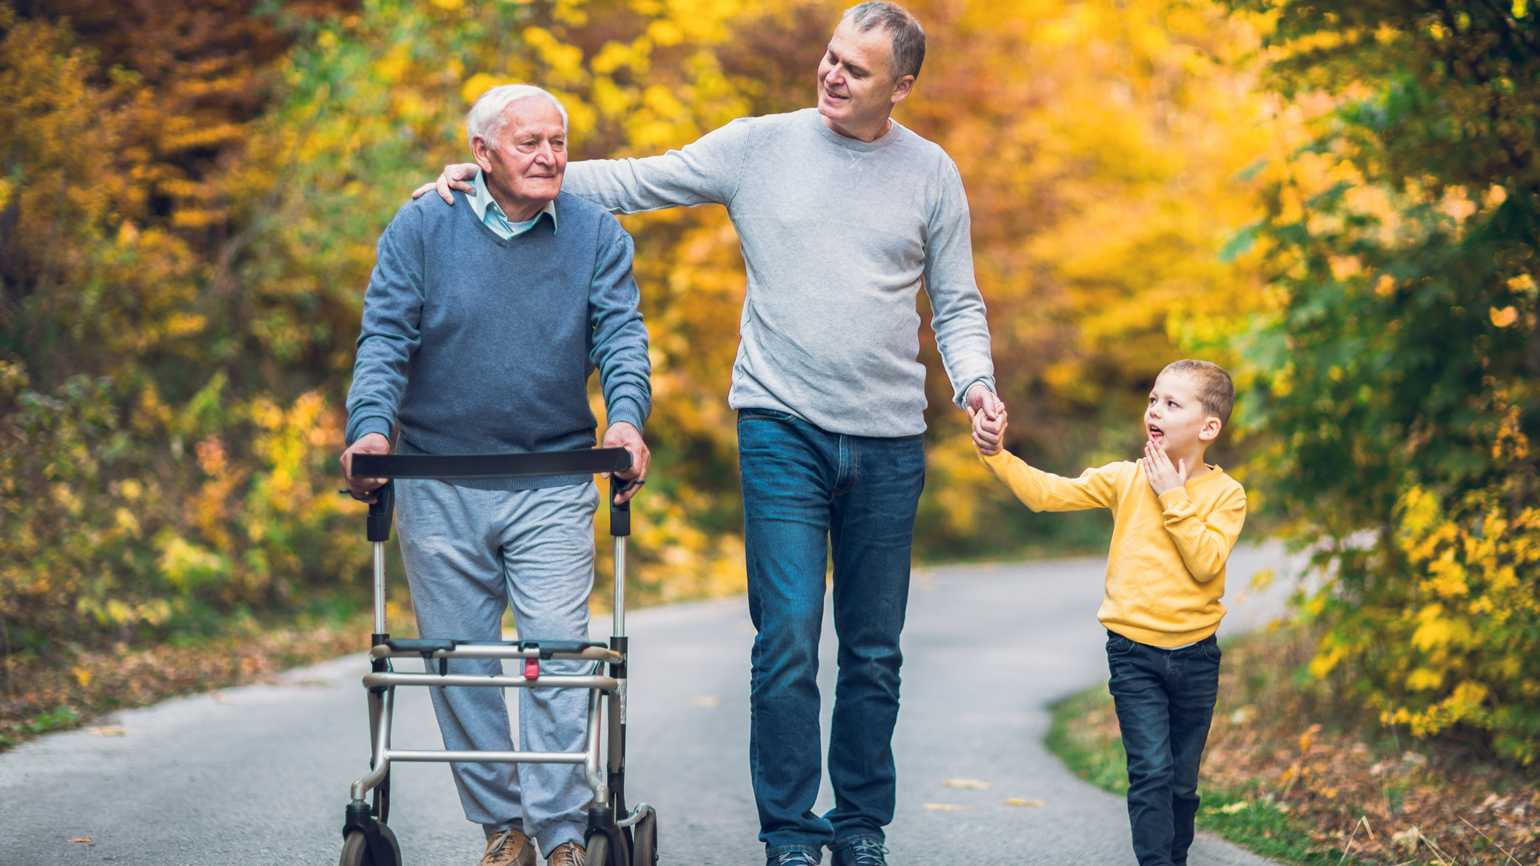 Caregiving for a Loved One Brings Challenges, But Offers Rewards